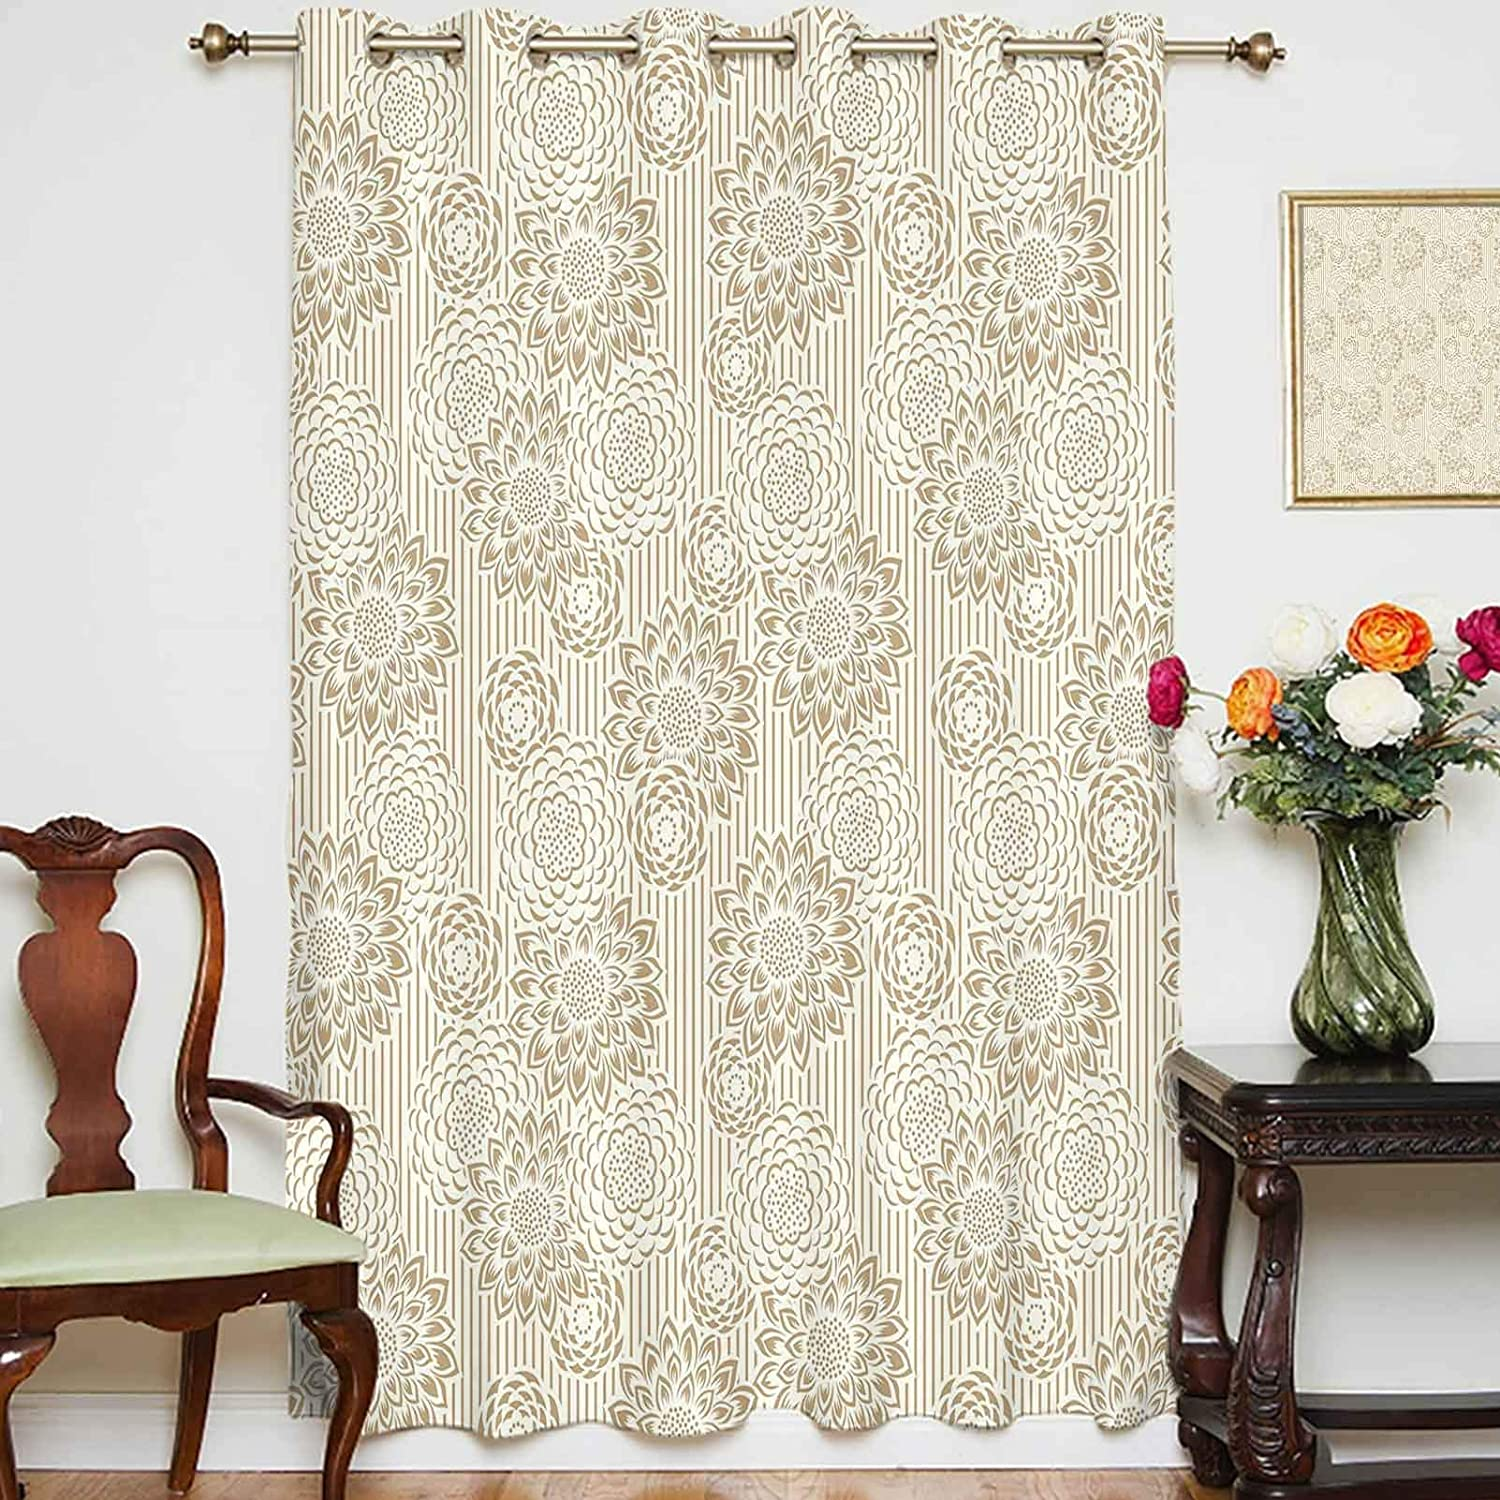 Blackout Shading Curtains Retro Dealing full price reduction Max 66% OFF Carnati Design Wildflowers Toned